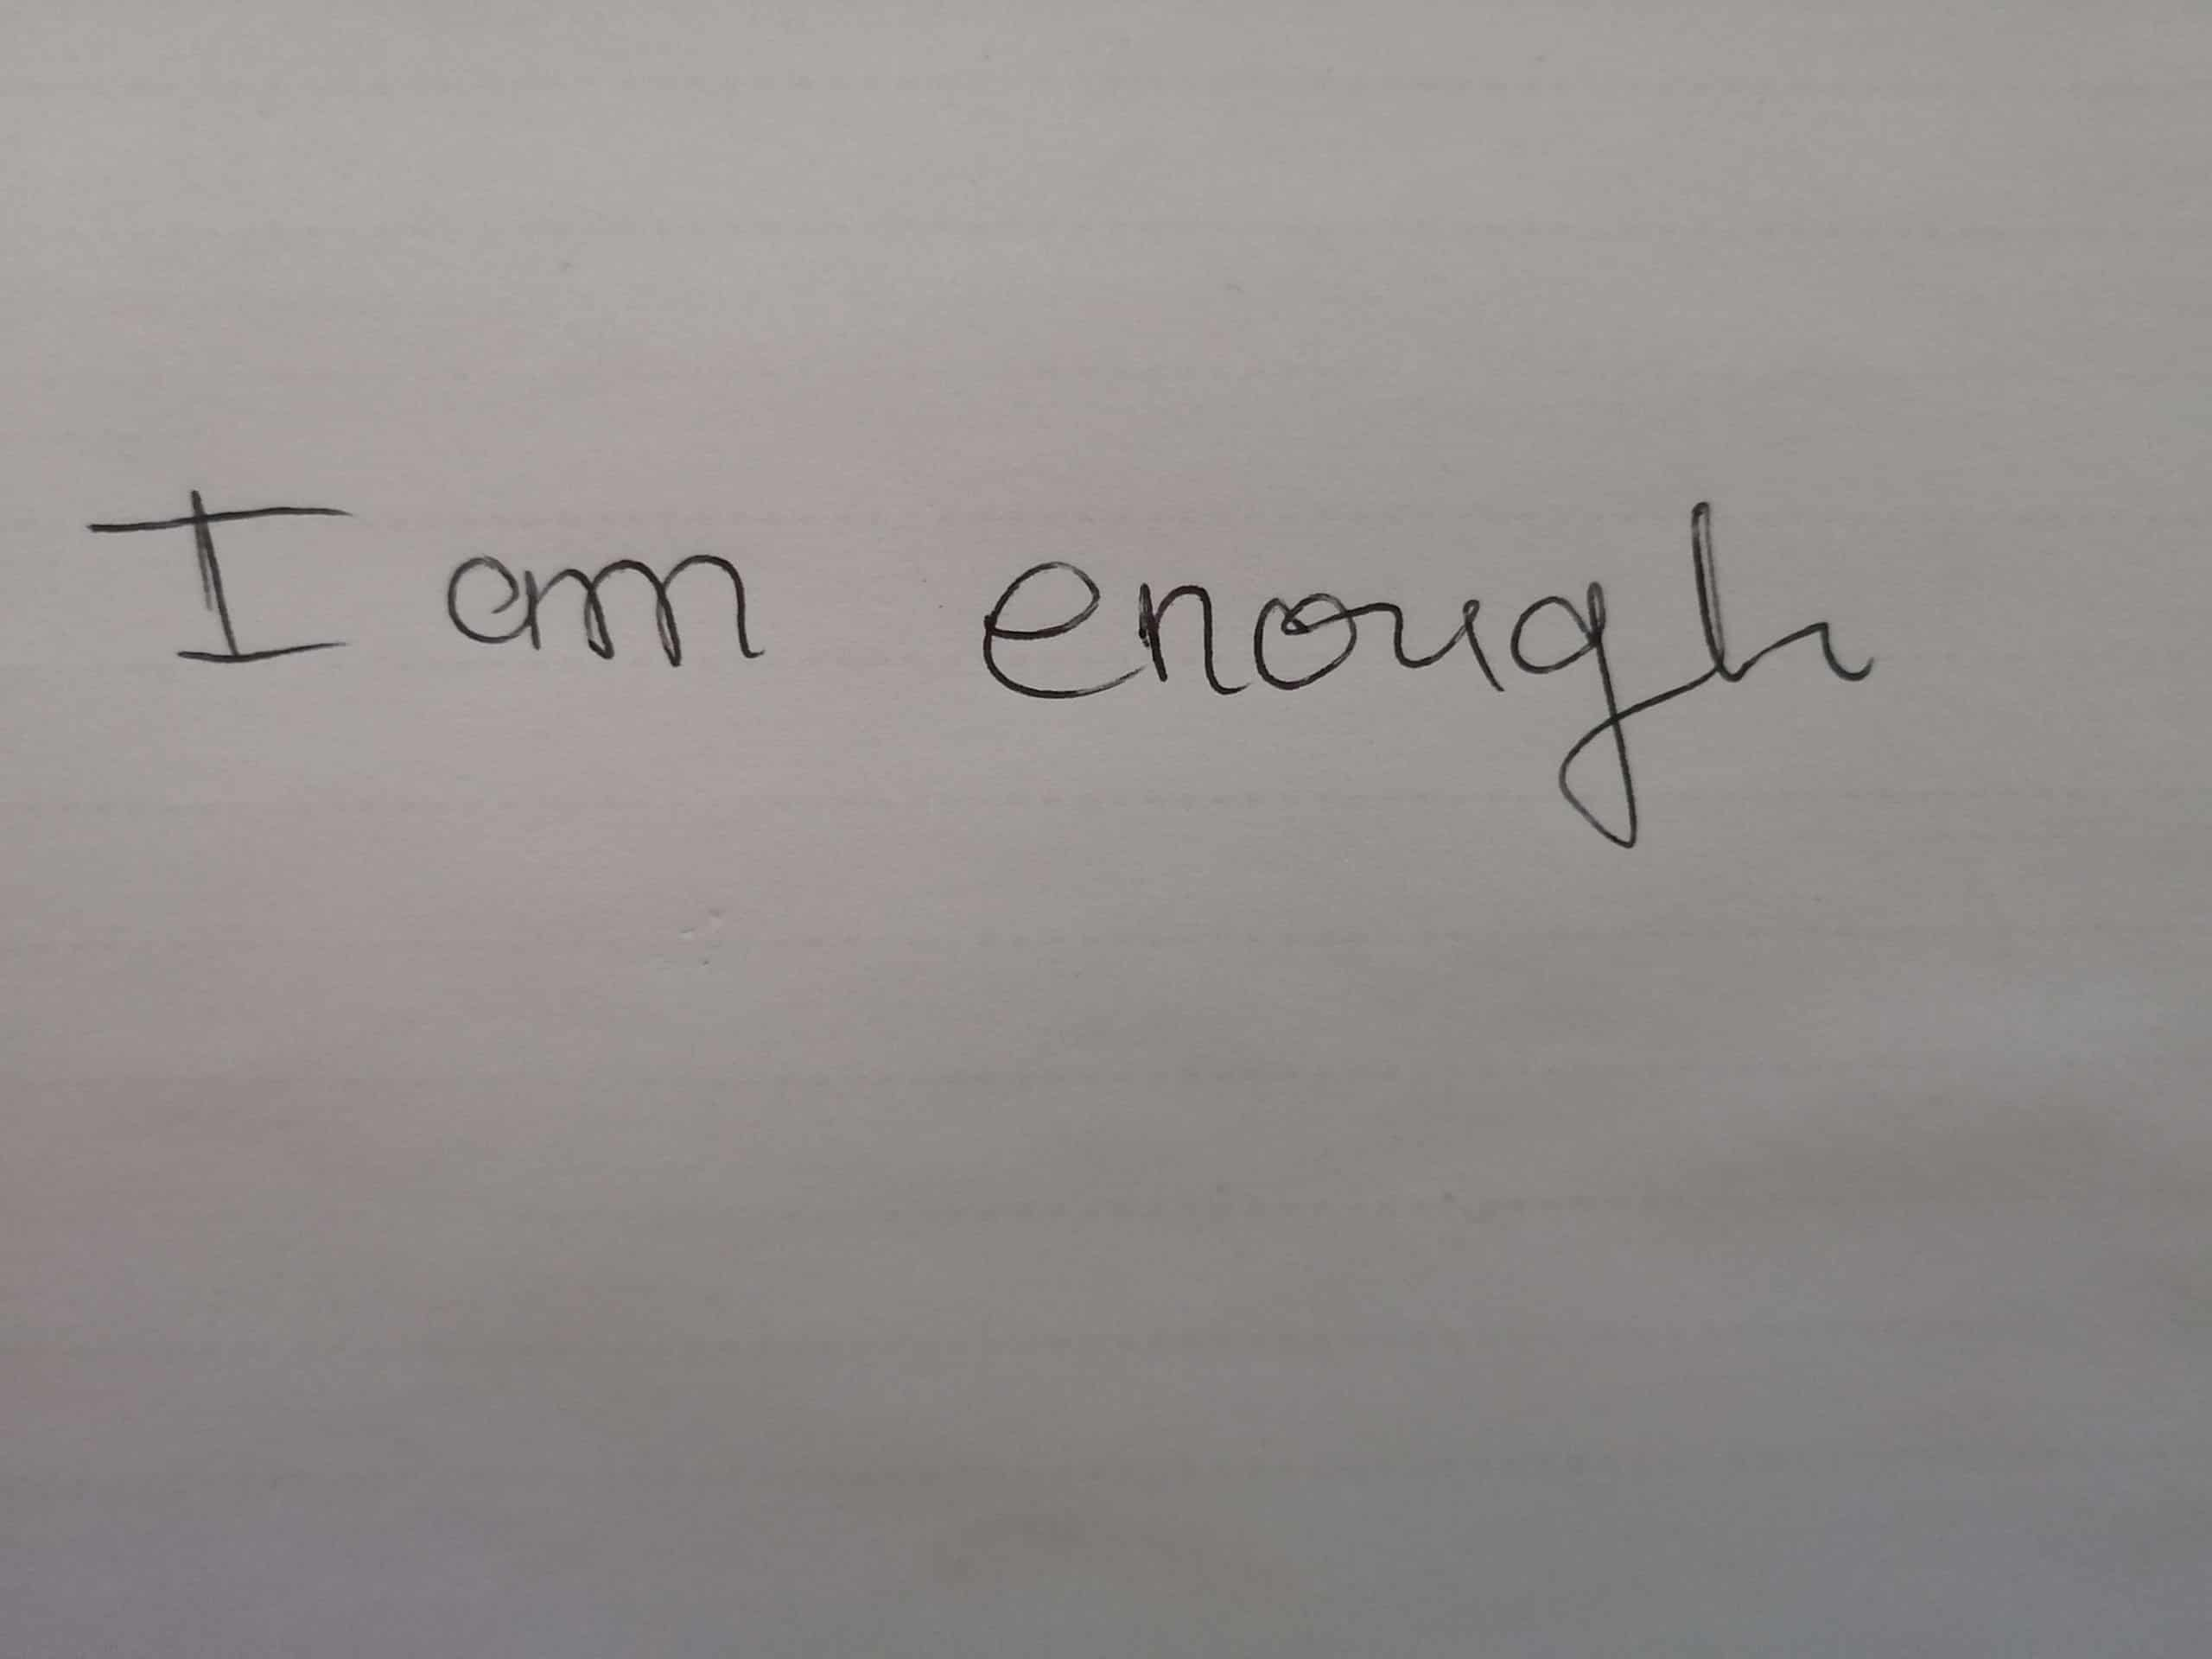 I am enough to get fit and lose weight